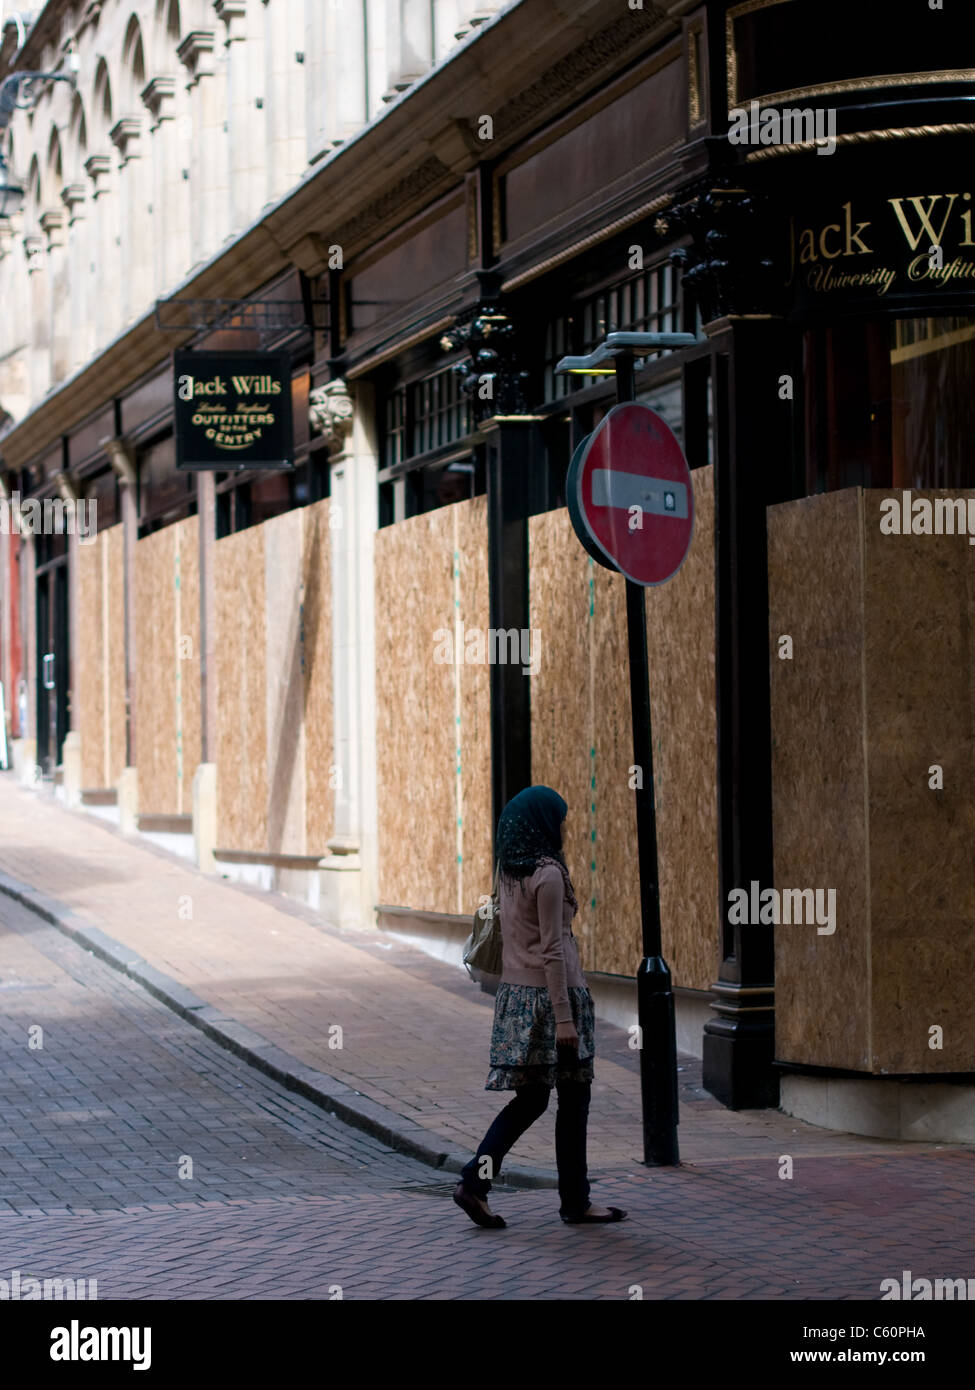 Young Muslim woman walks past a boarded-up Jack Wills store on New Street Birmingham following the riots of 2011. - Stock Image